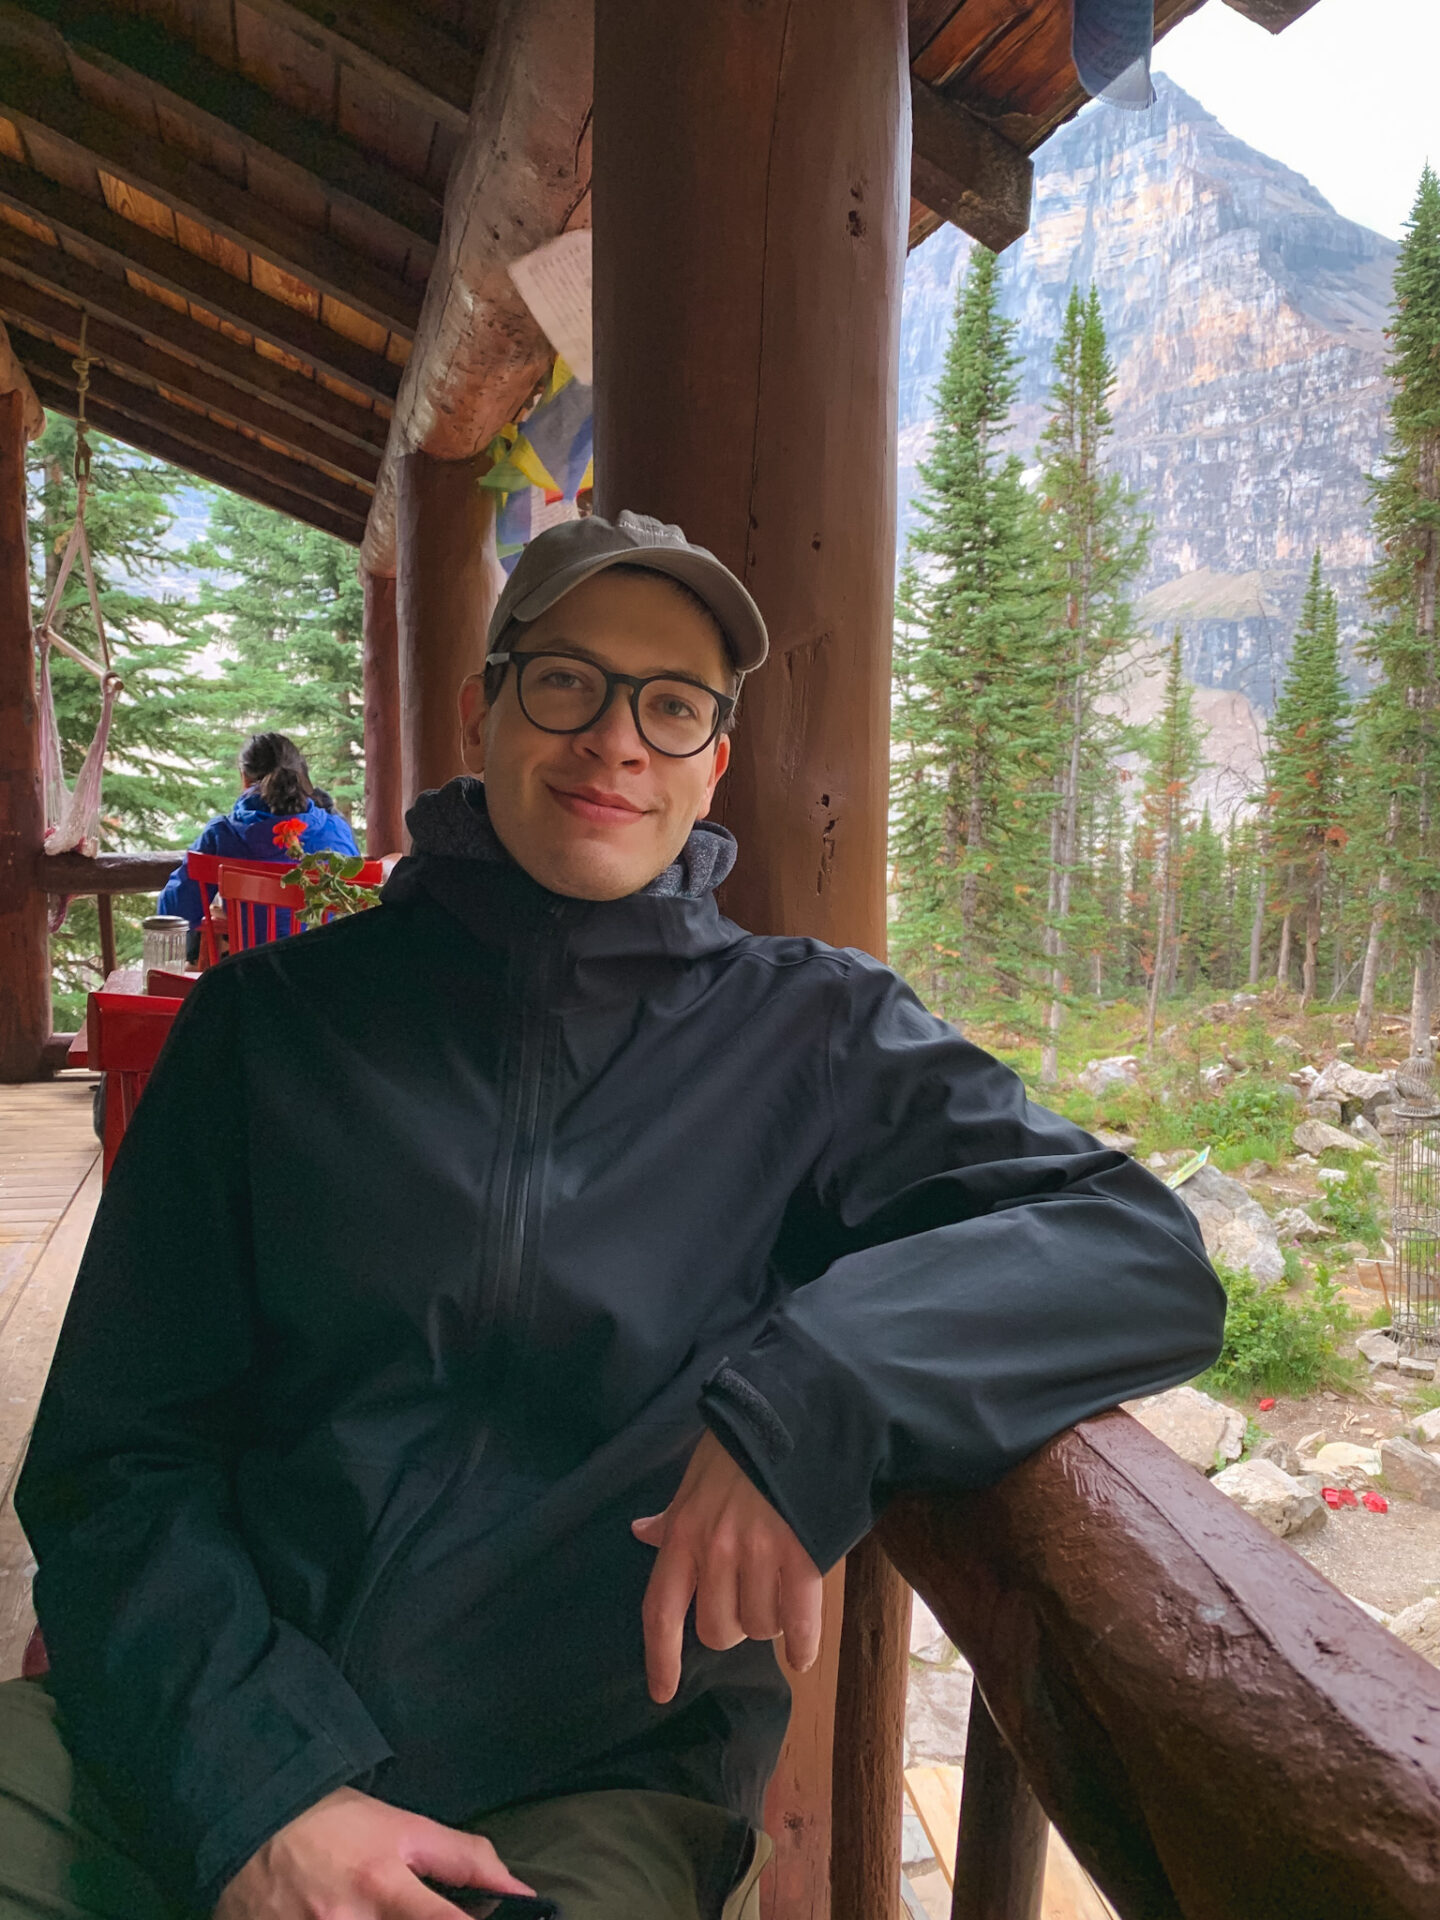 Plain of the Six Glaciers Teahouse in Lake Louise, Alberta